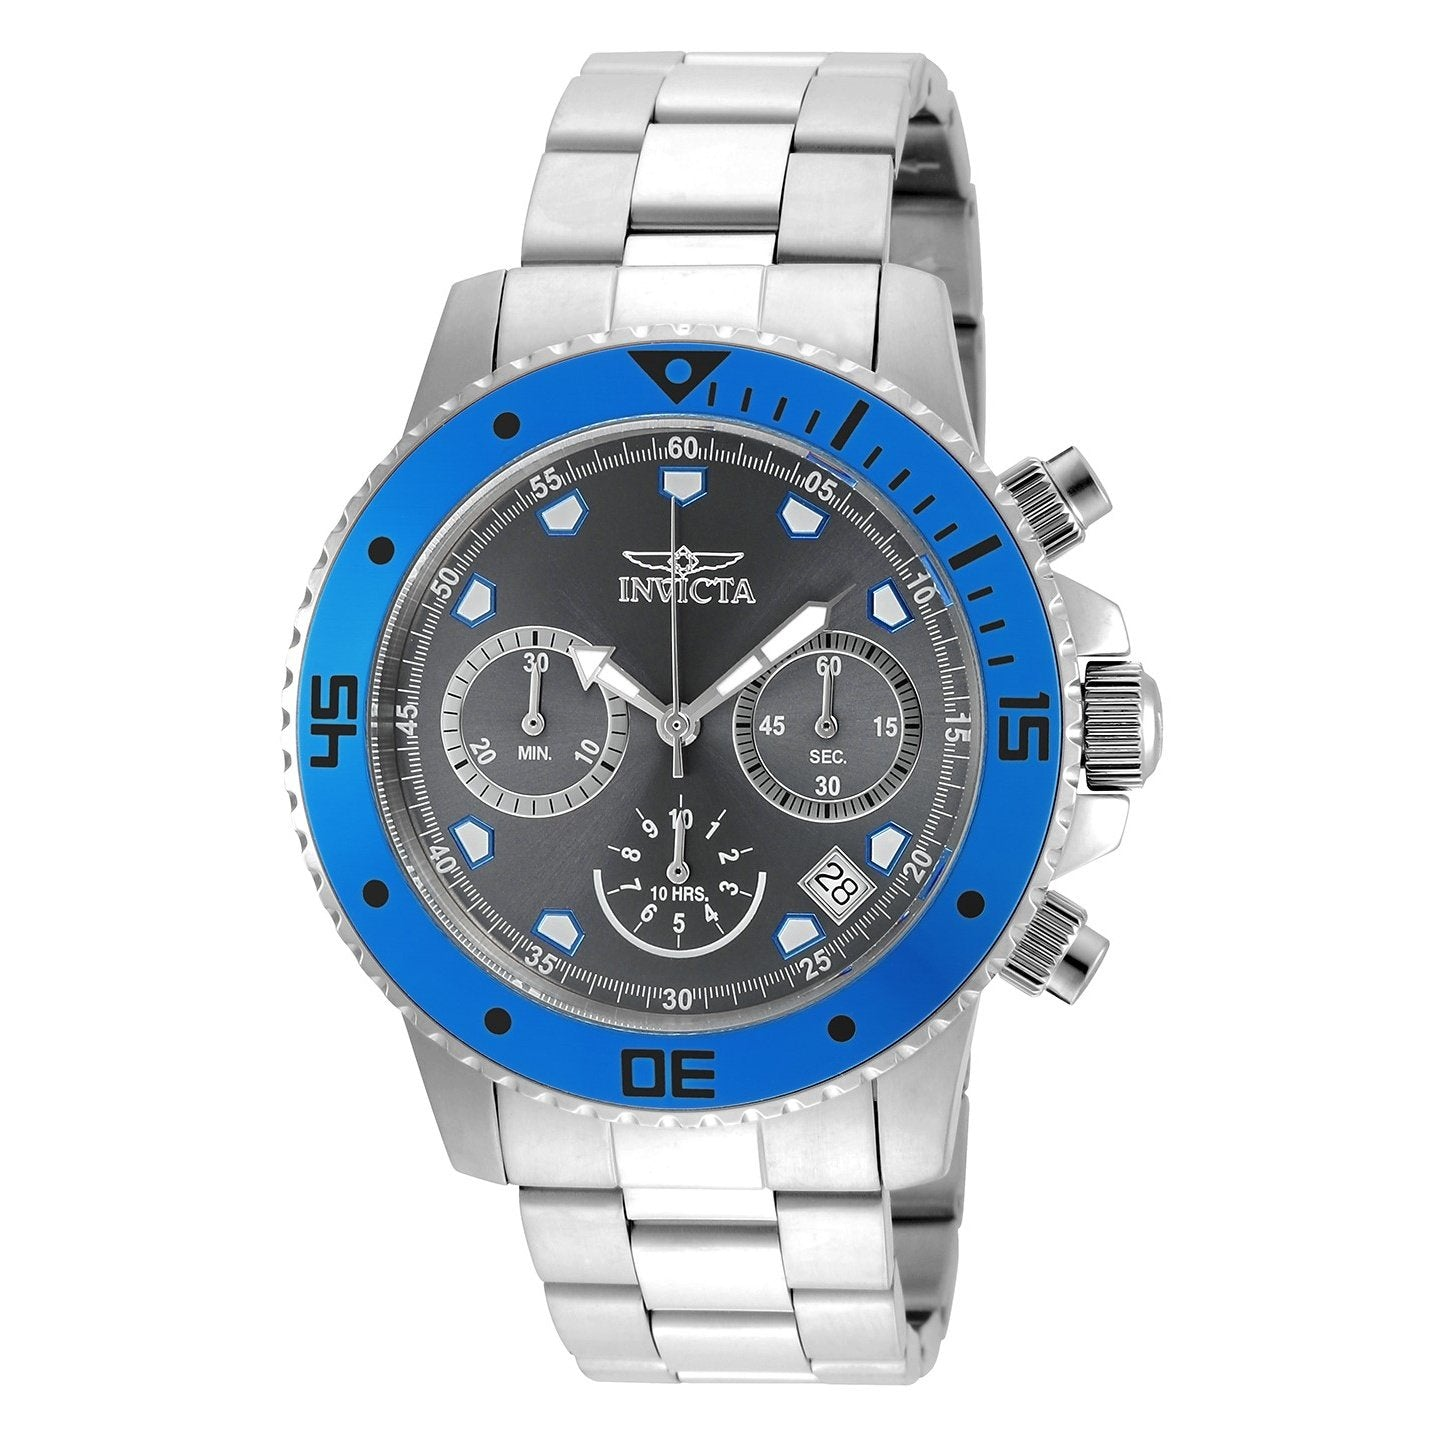 Invicta Men's 21886 Pro Diver Stainless Steel Watch